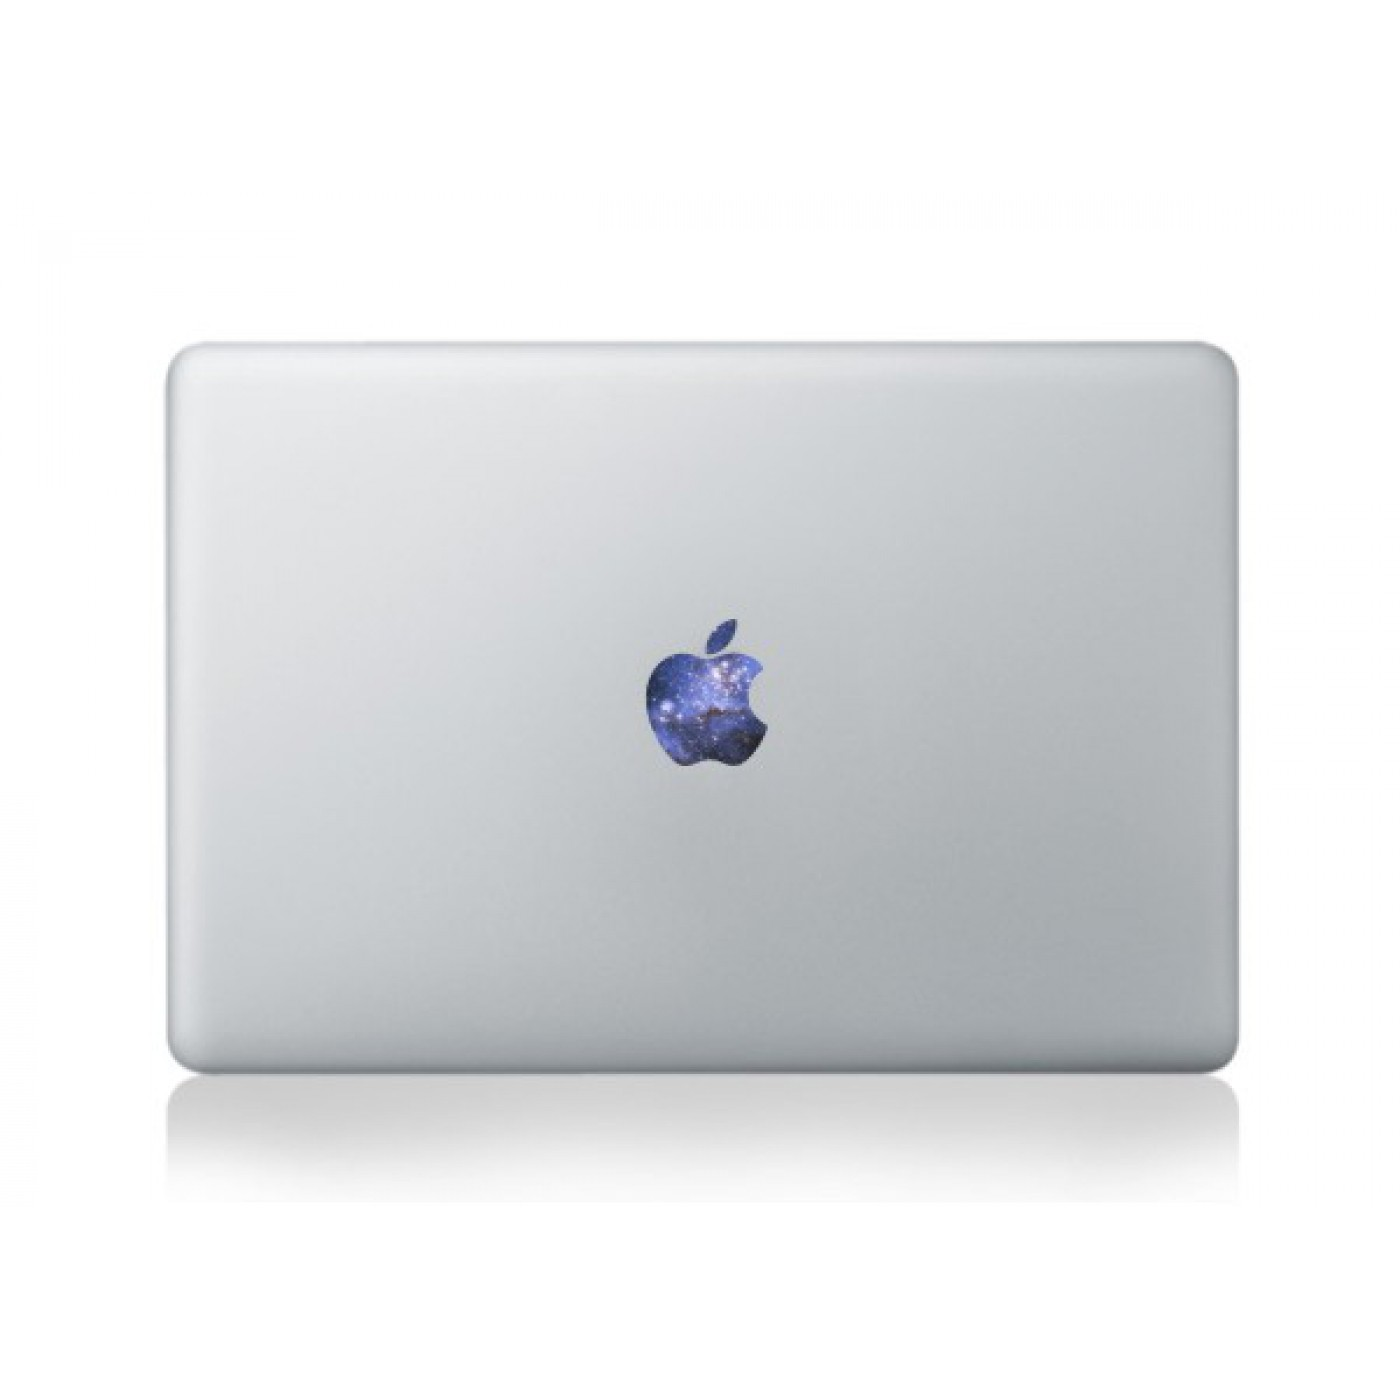 aufkleber macbook apple logo galaxy blue. Black Bedroom Furniture Sets. Home Design Ideas